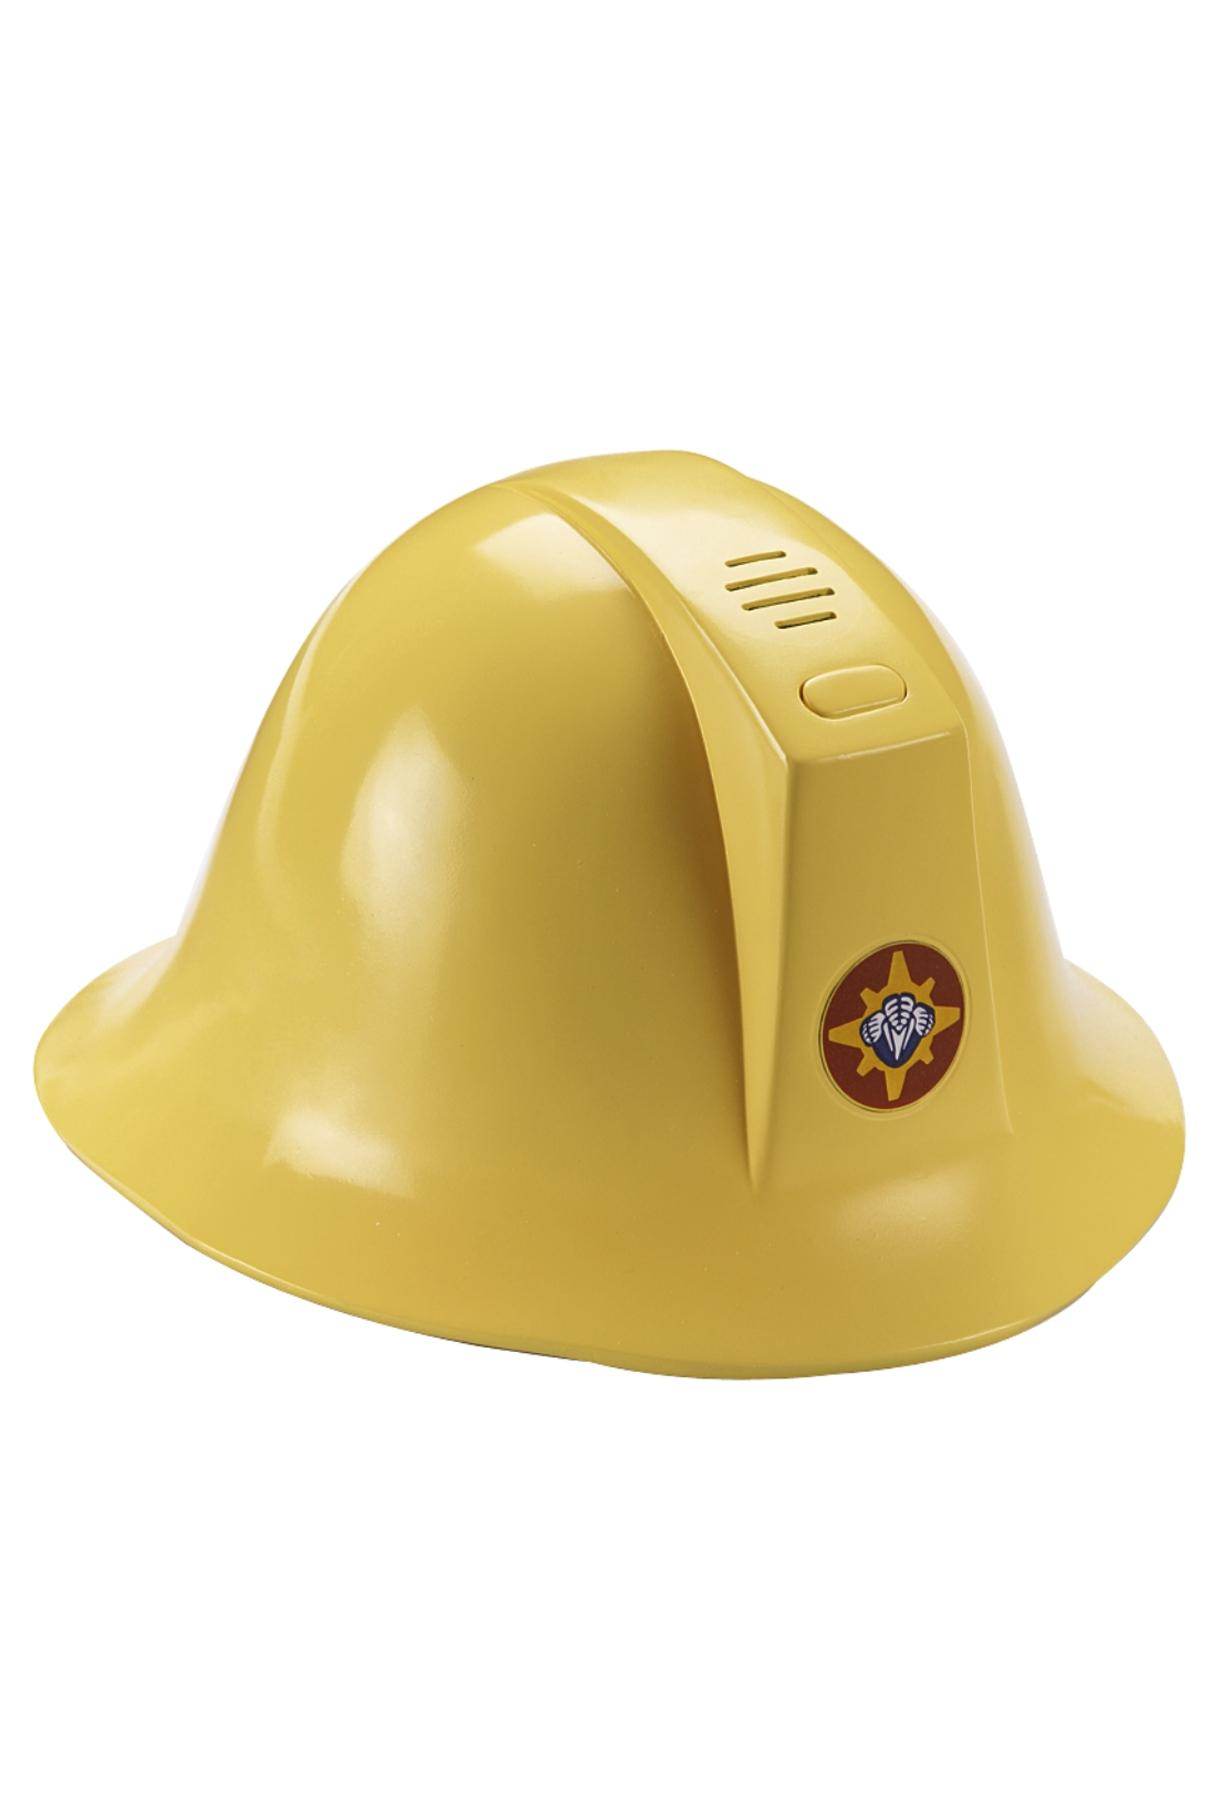 Compare prices for Fireman Sam Helmet